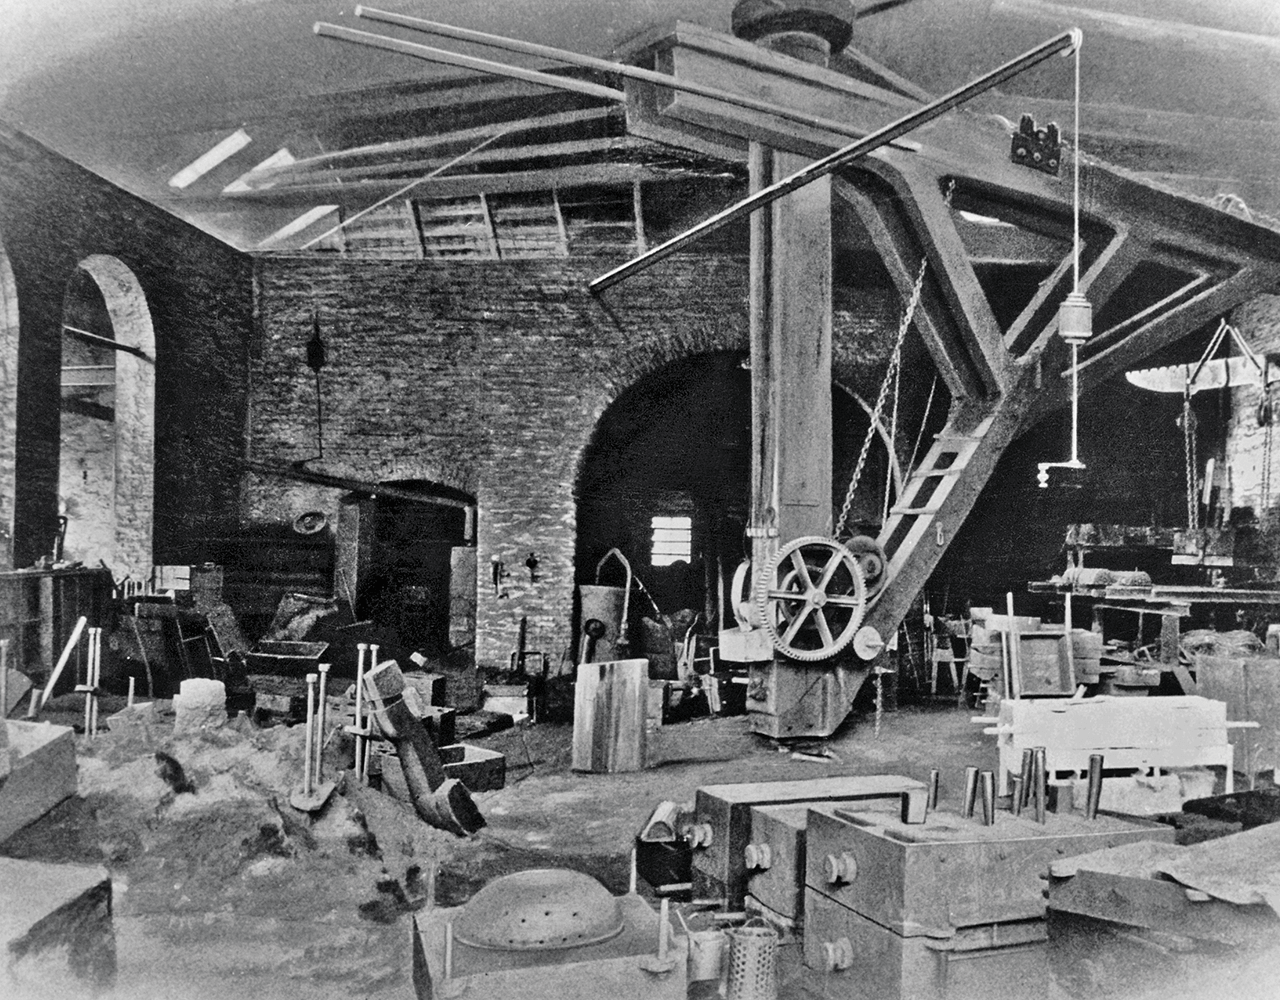 the castings for machines made in Aerzen were produced in the factory's own iron foundry